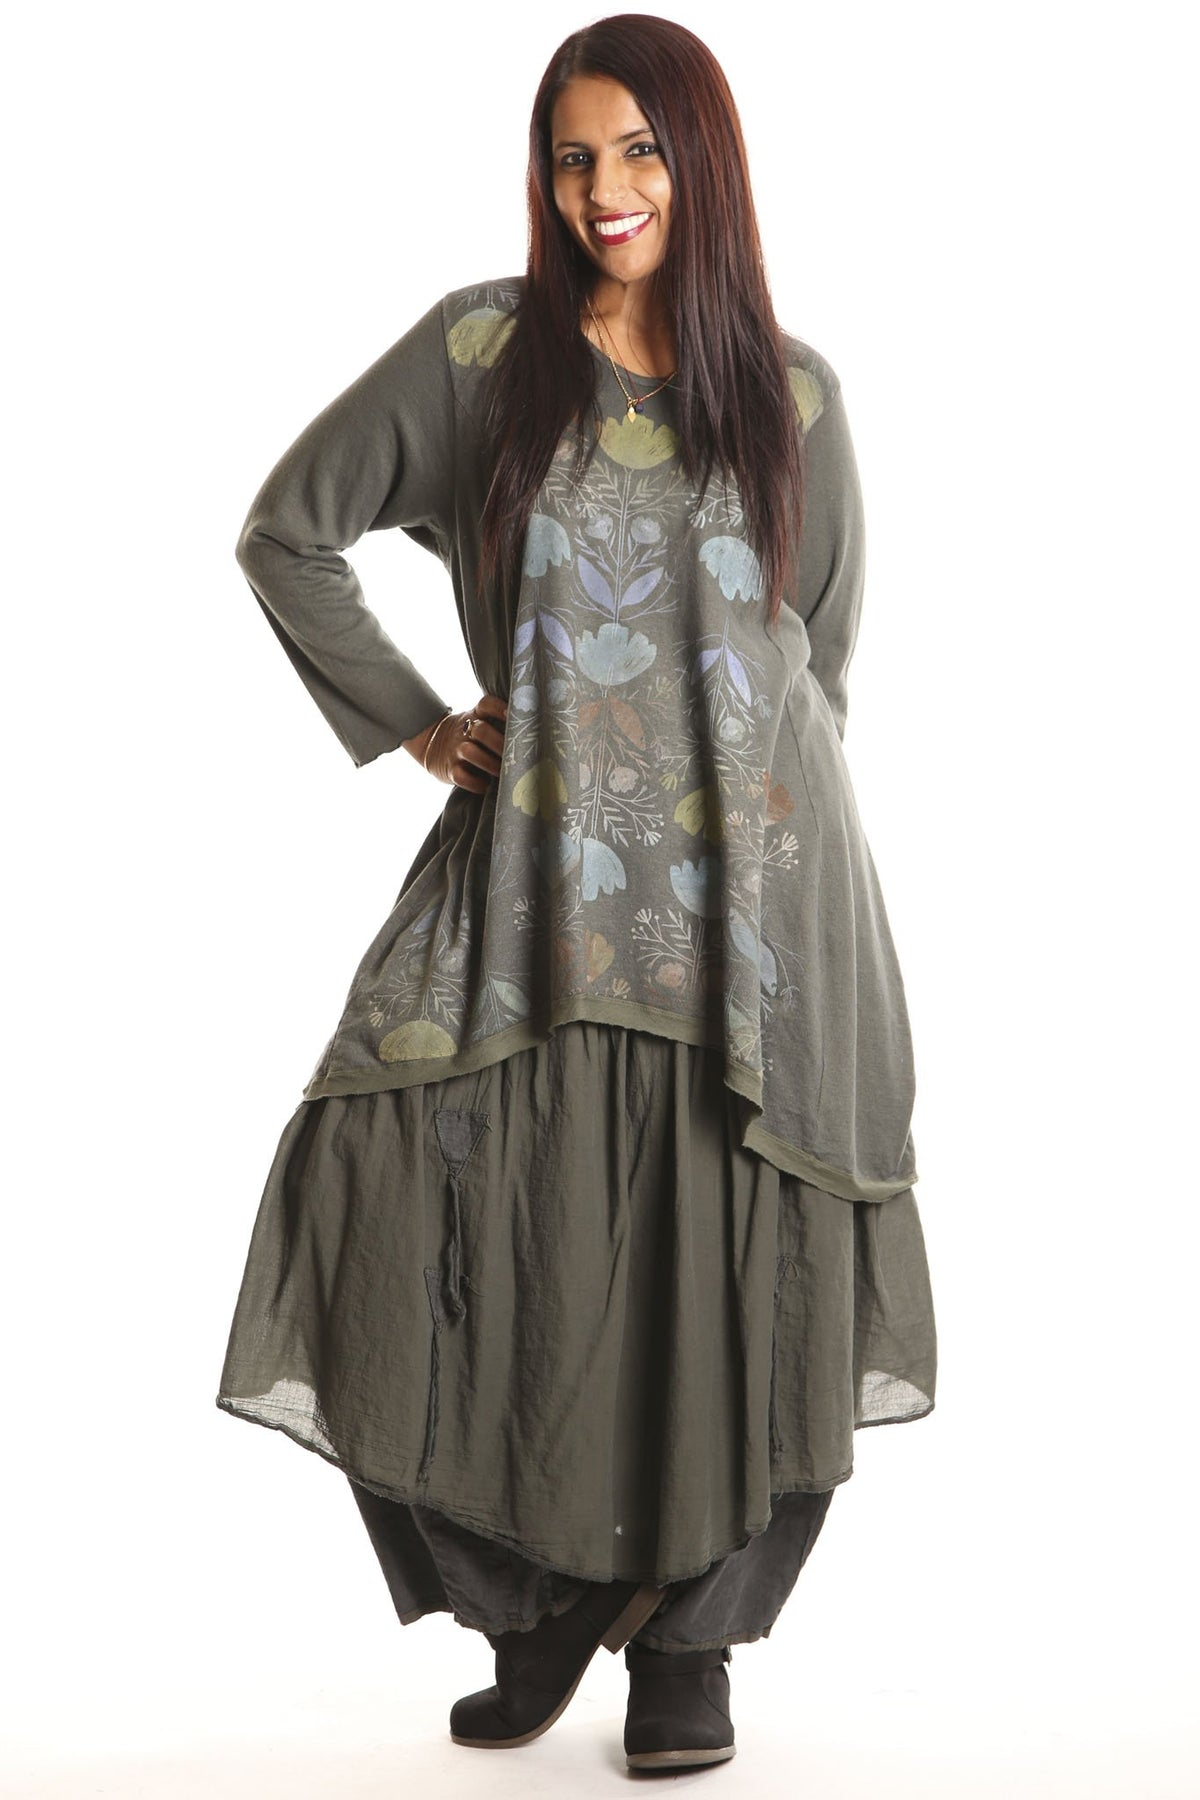 1244 Organic Hemp Cotton Dark Olive Hi Lo Tunic W/ Orly Flower